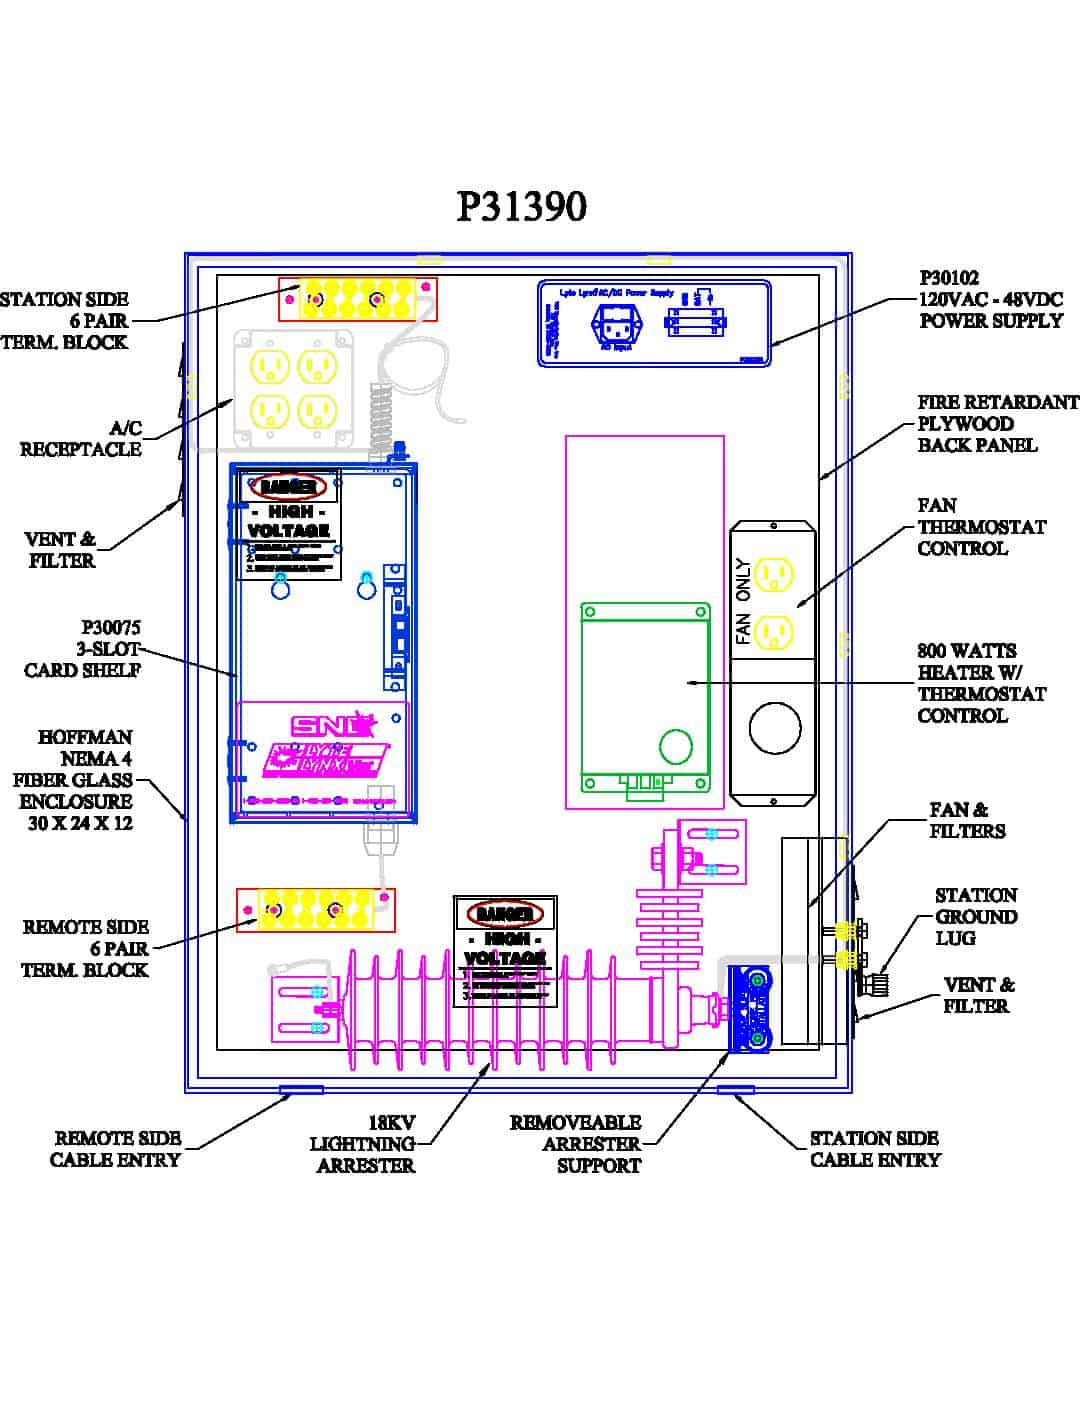 P31390 Turnkey Protection Packages – 3 slot PDF thumbnail